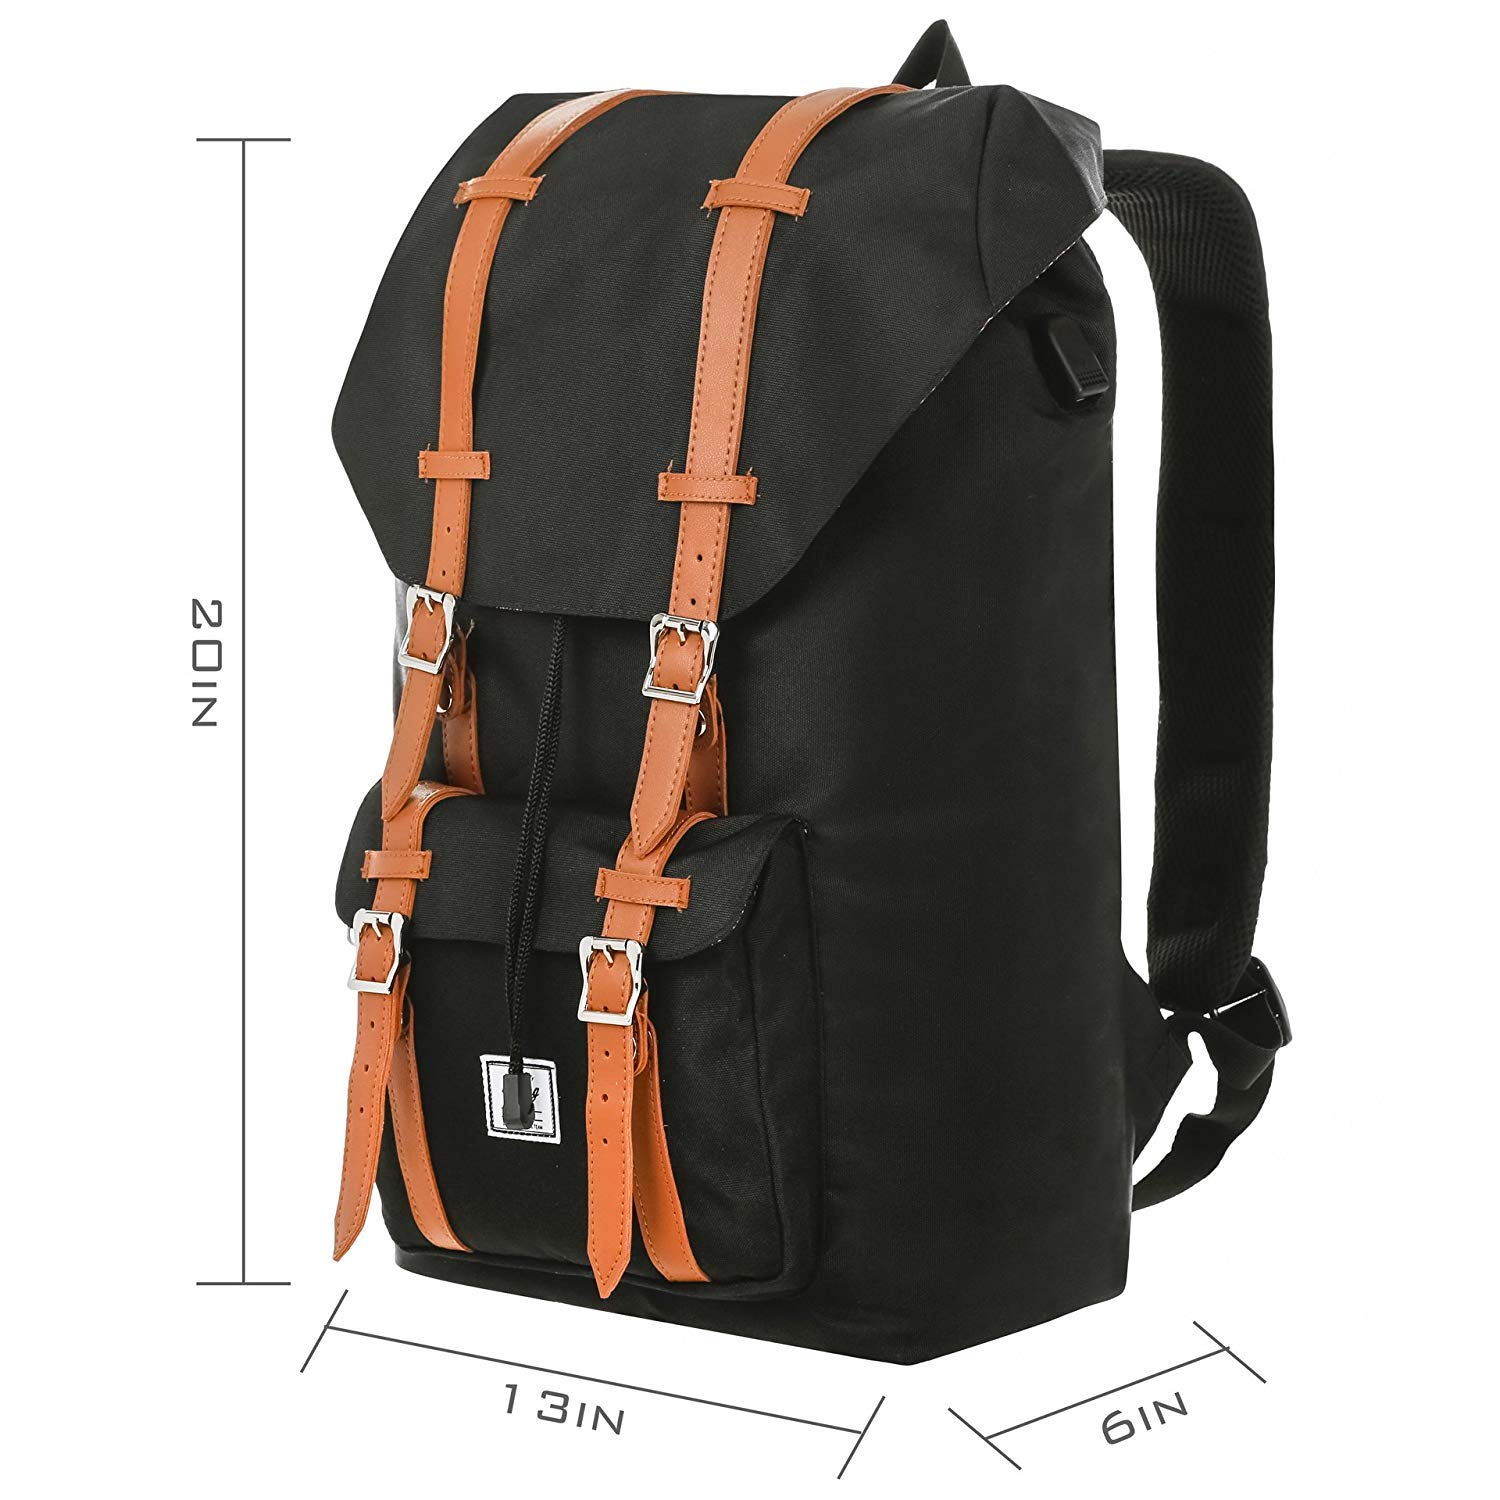 e9cd2ad8c4 Benteng Laptop Backpack, Travel Backpack Little America Style With USB  Charging Port -Every Day & Travel Gear For School | Camping | Hiking |  College ...